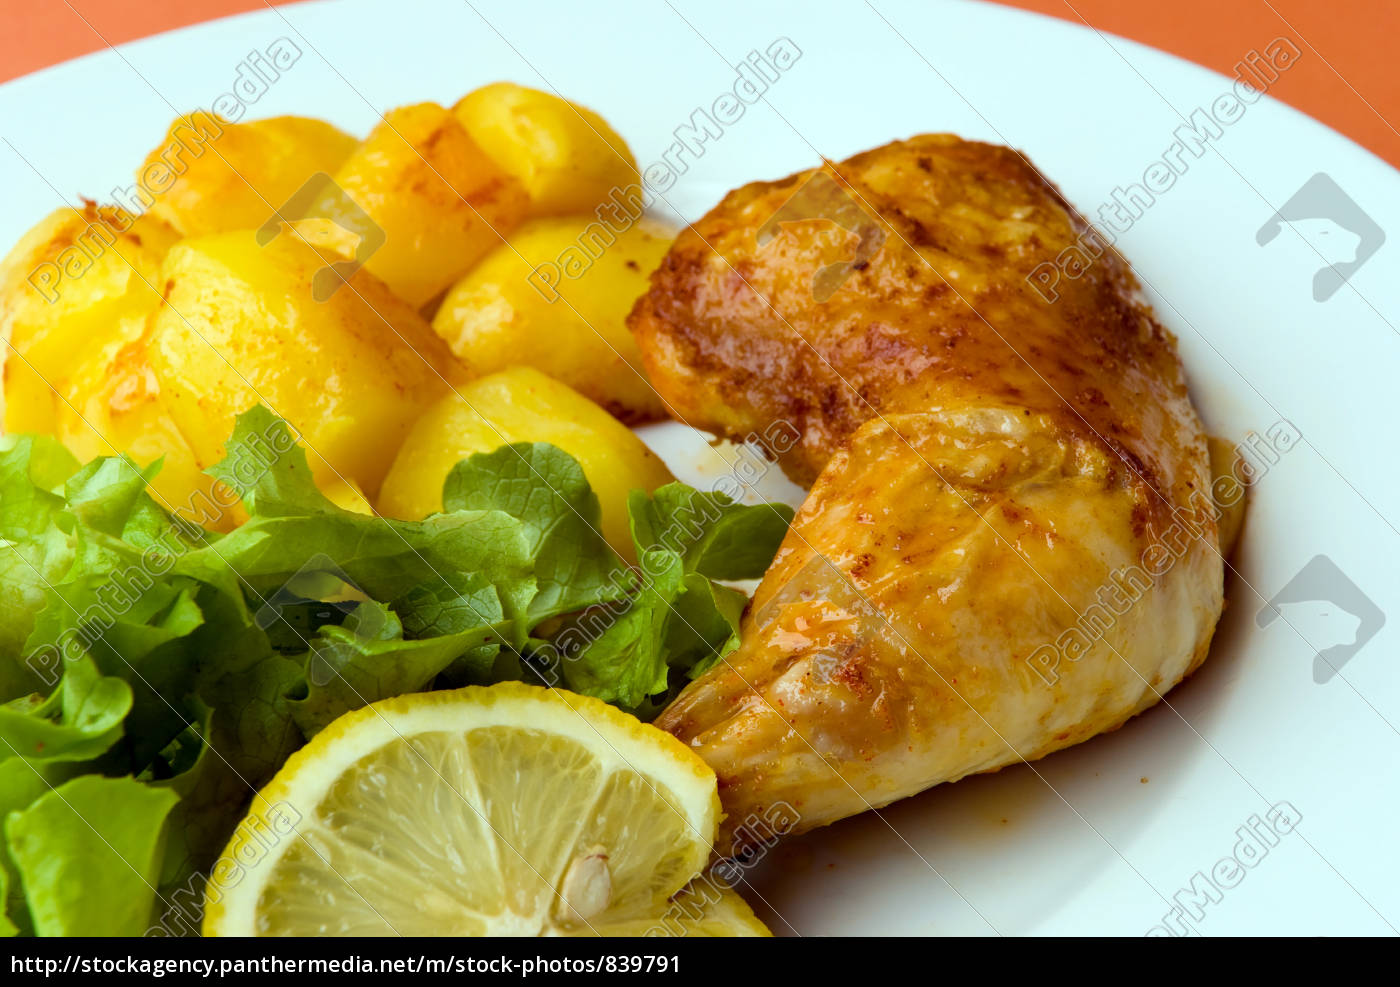 fried, chicken, leg, with, salad - 839791